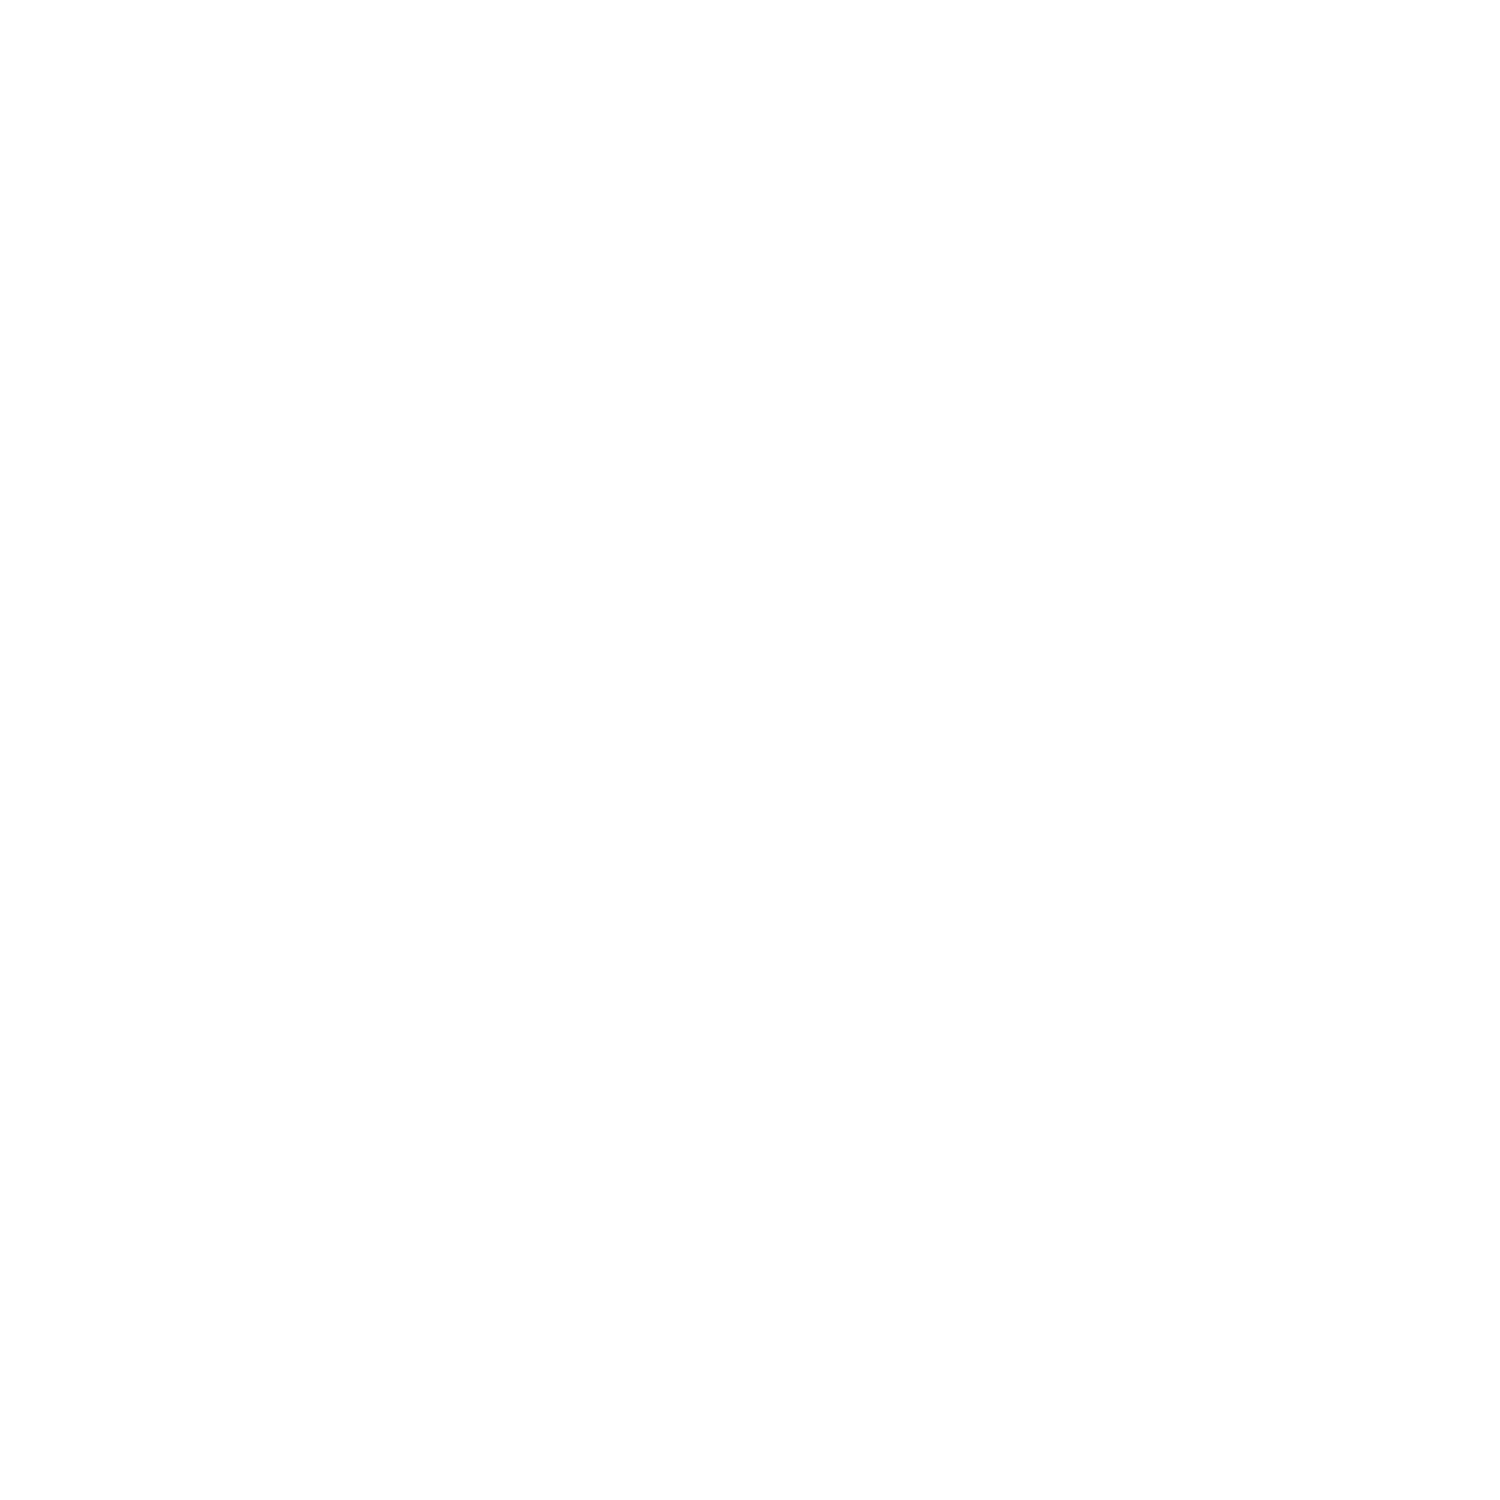 Battle Tested Veterans